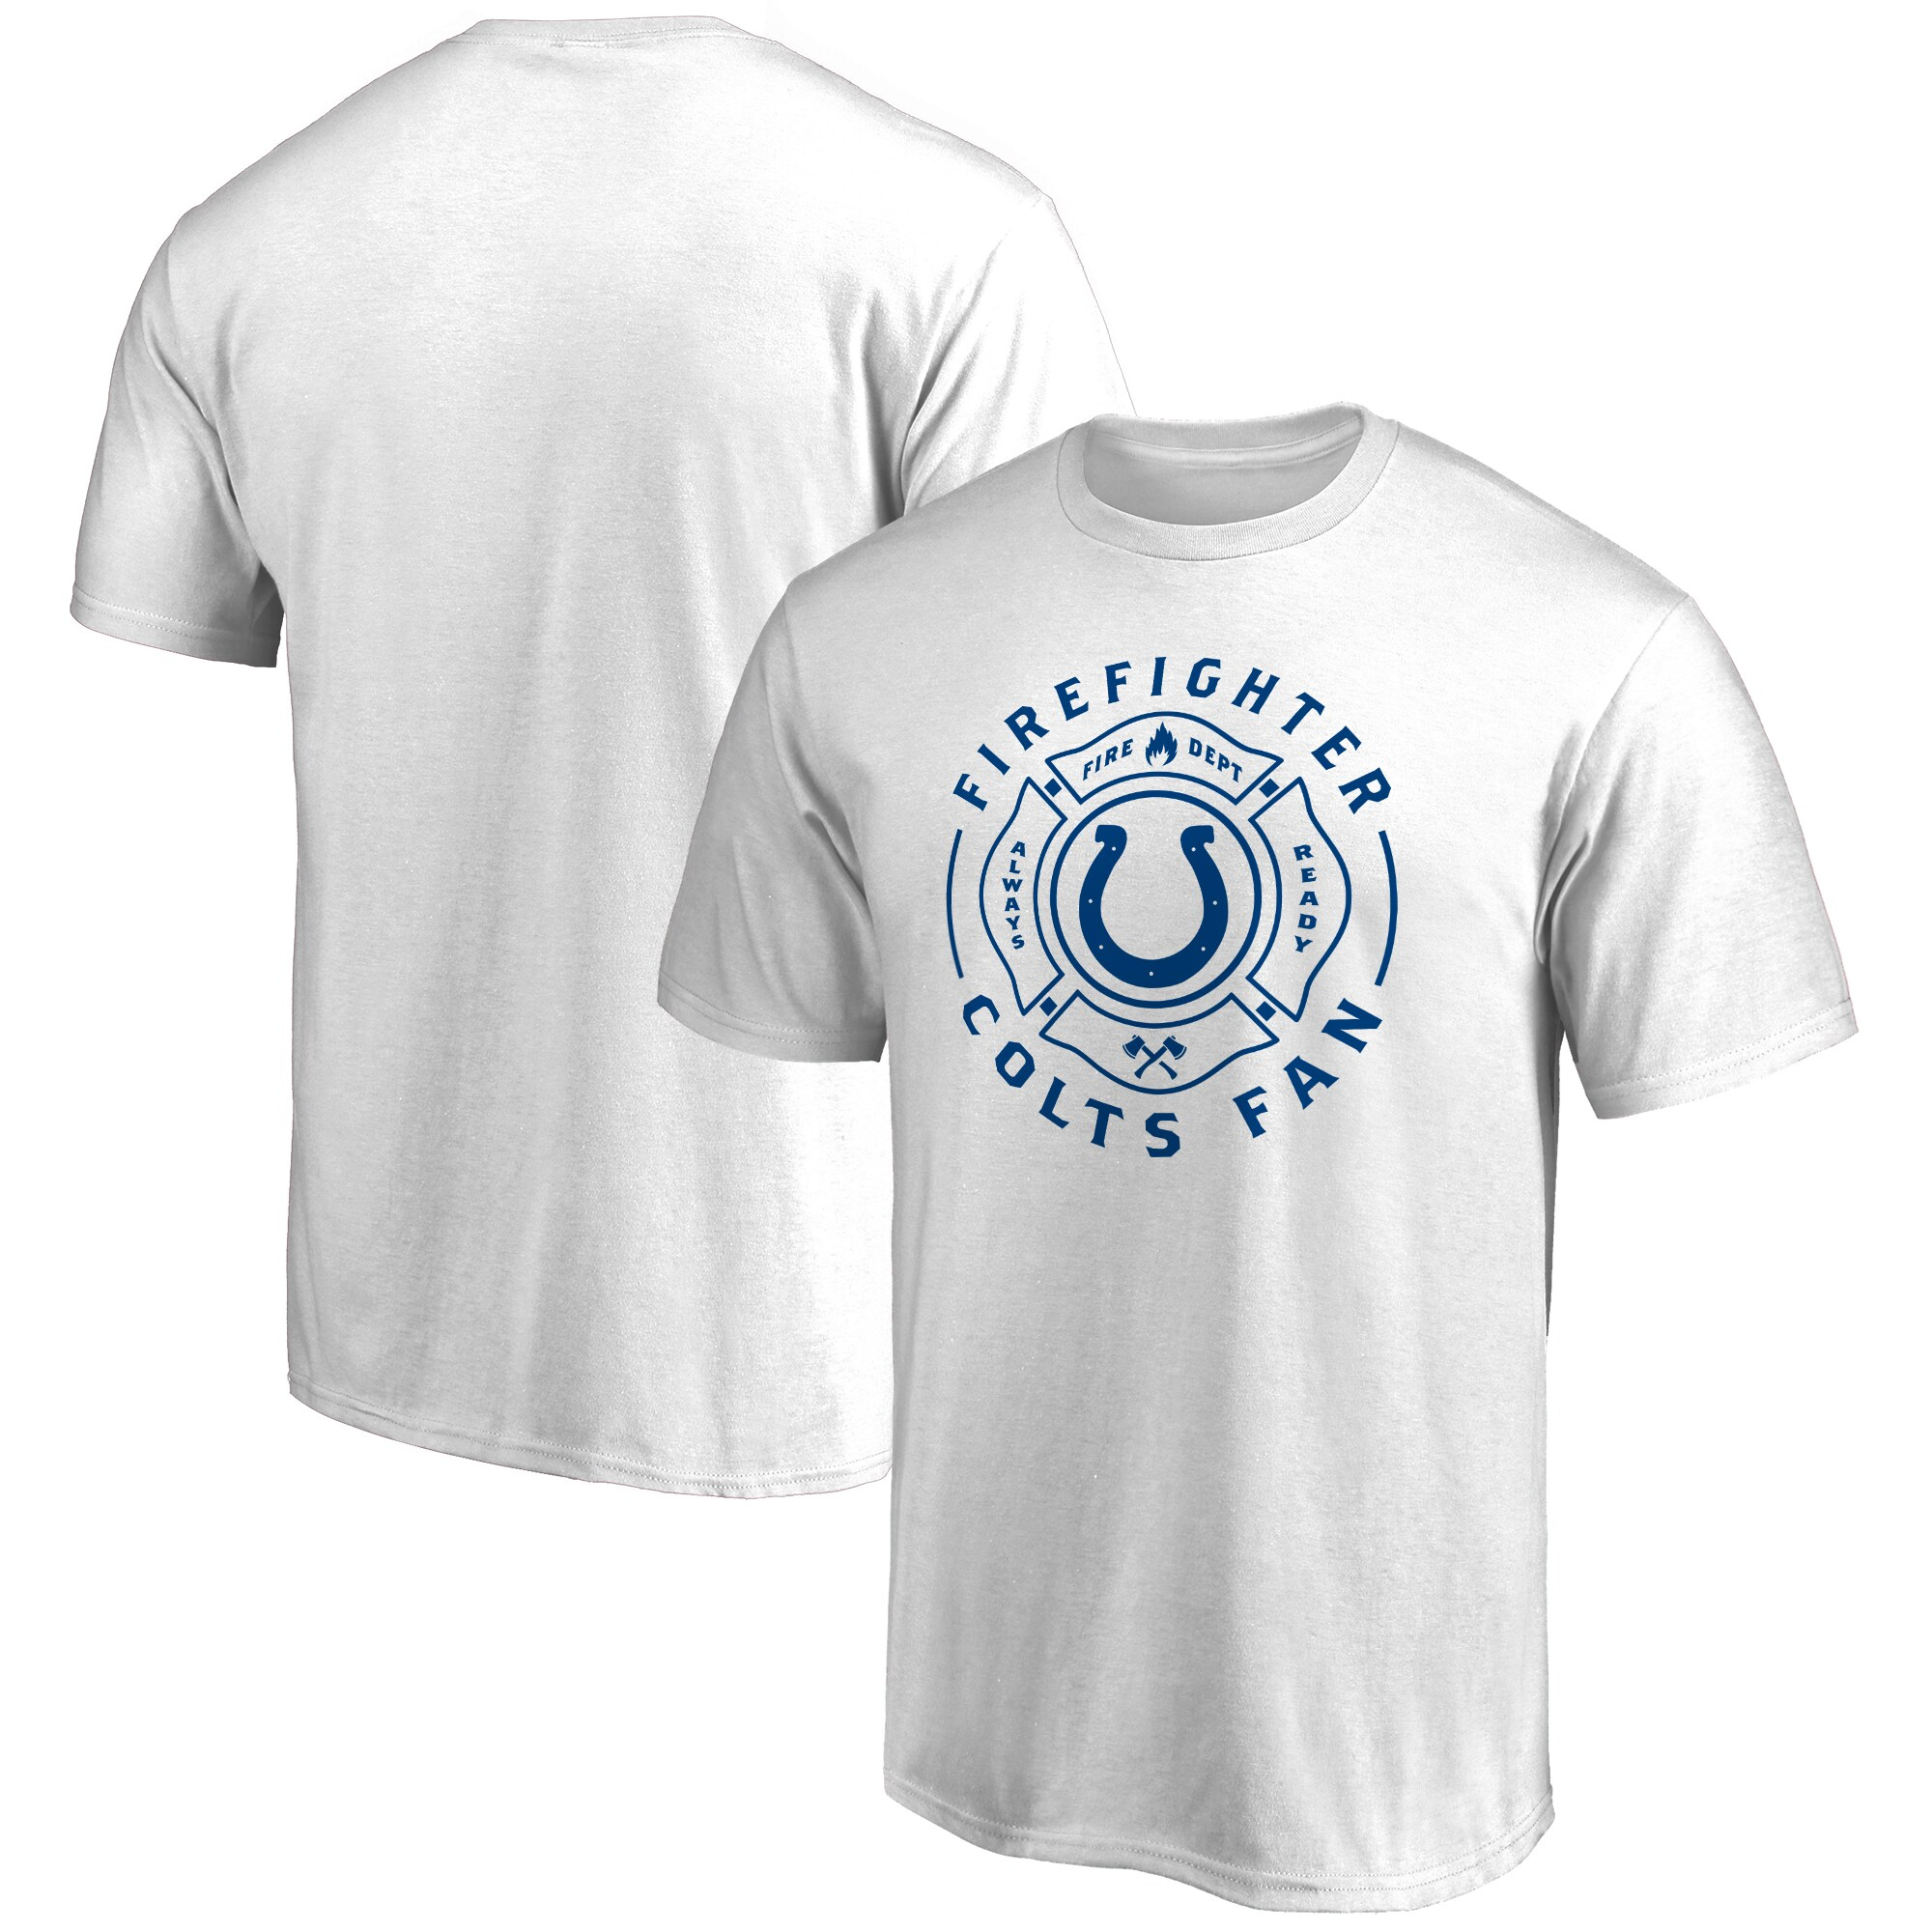 Indianapolis Colts NFL Pro Line Firefighter T-Shirt - White